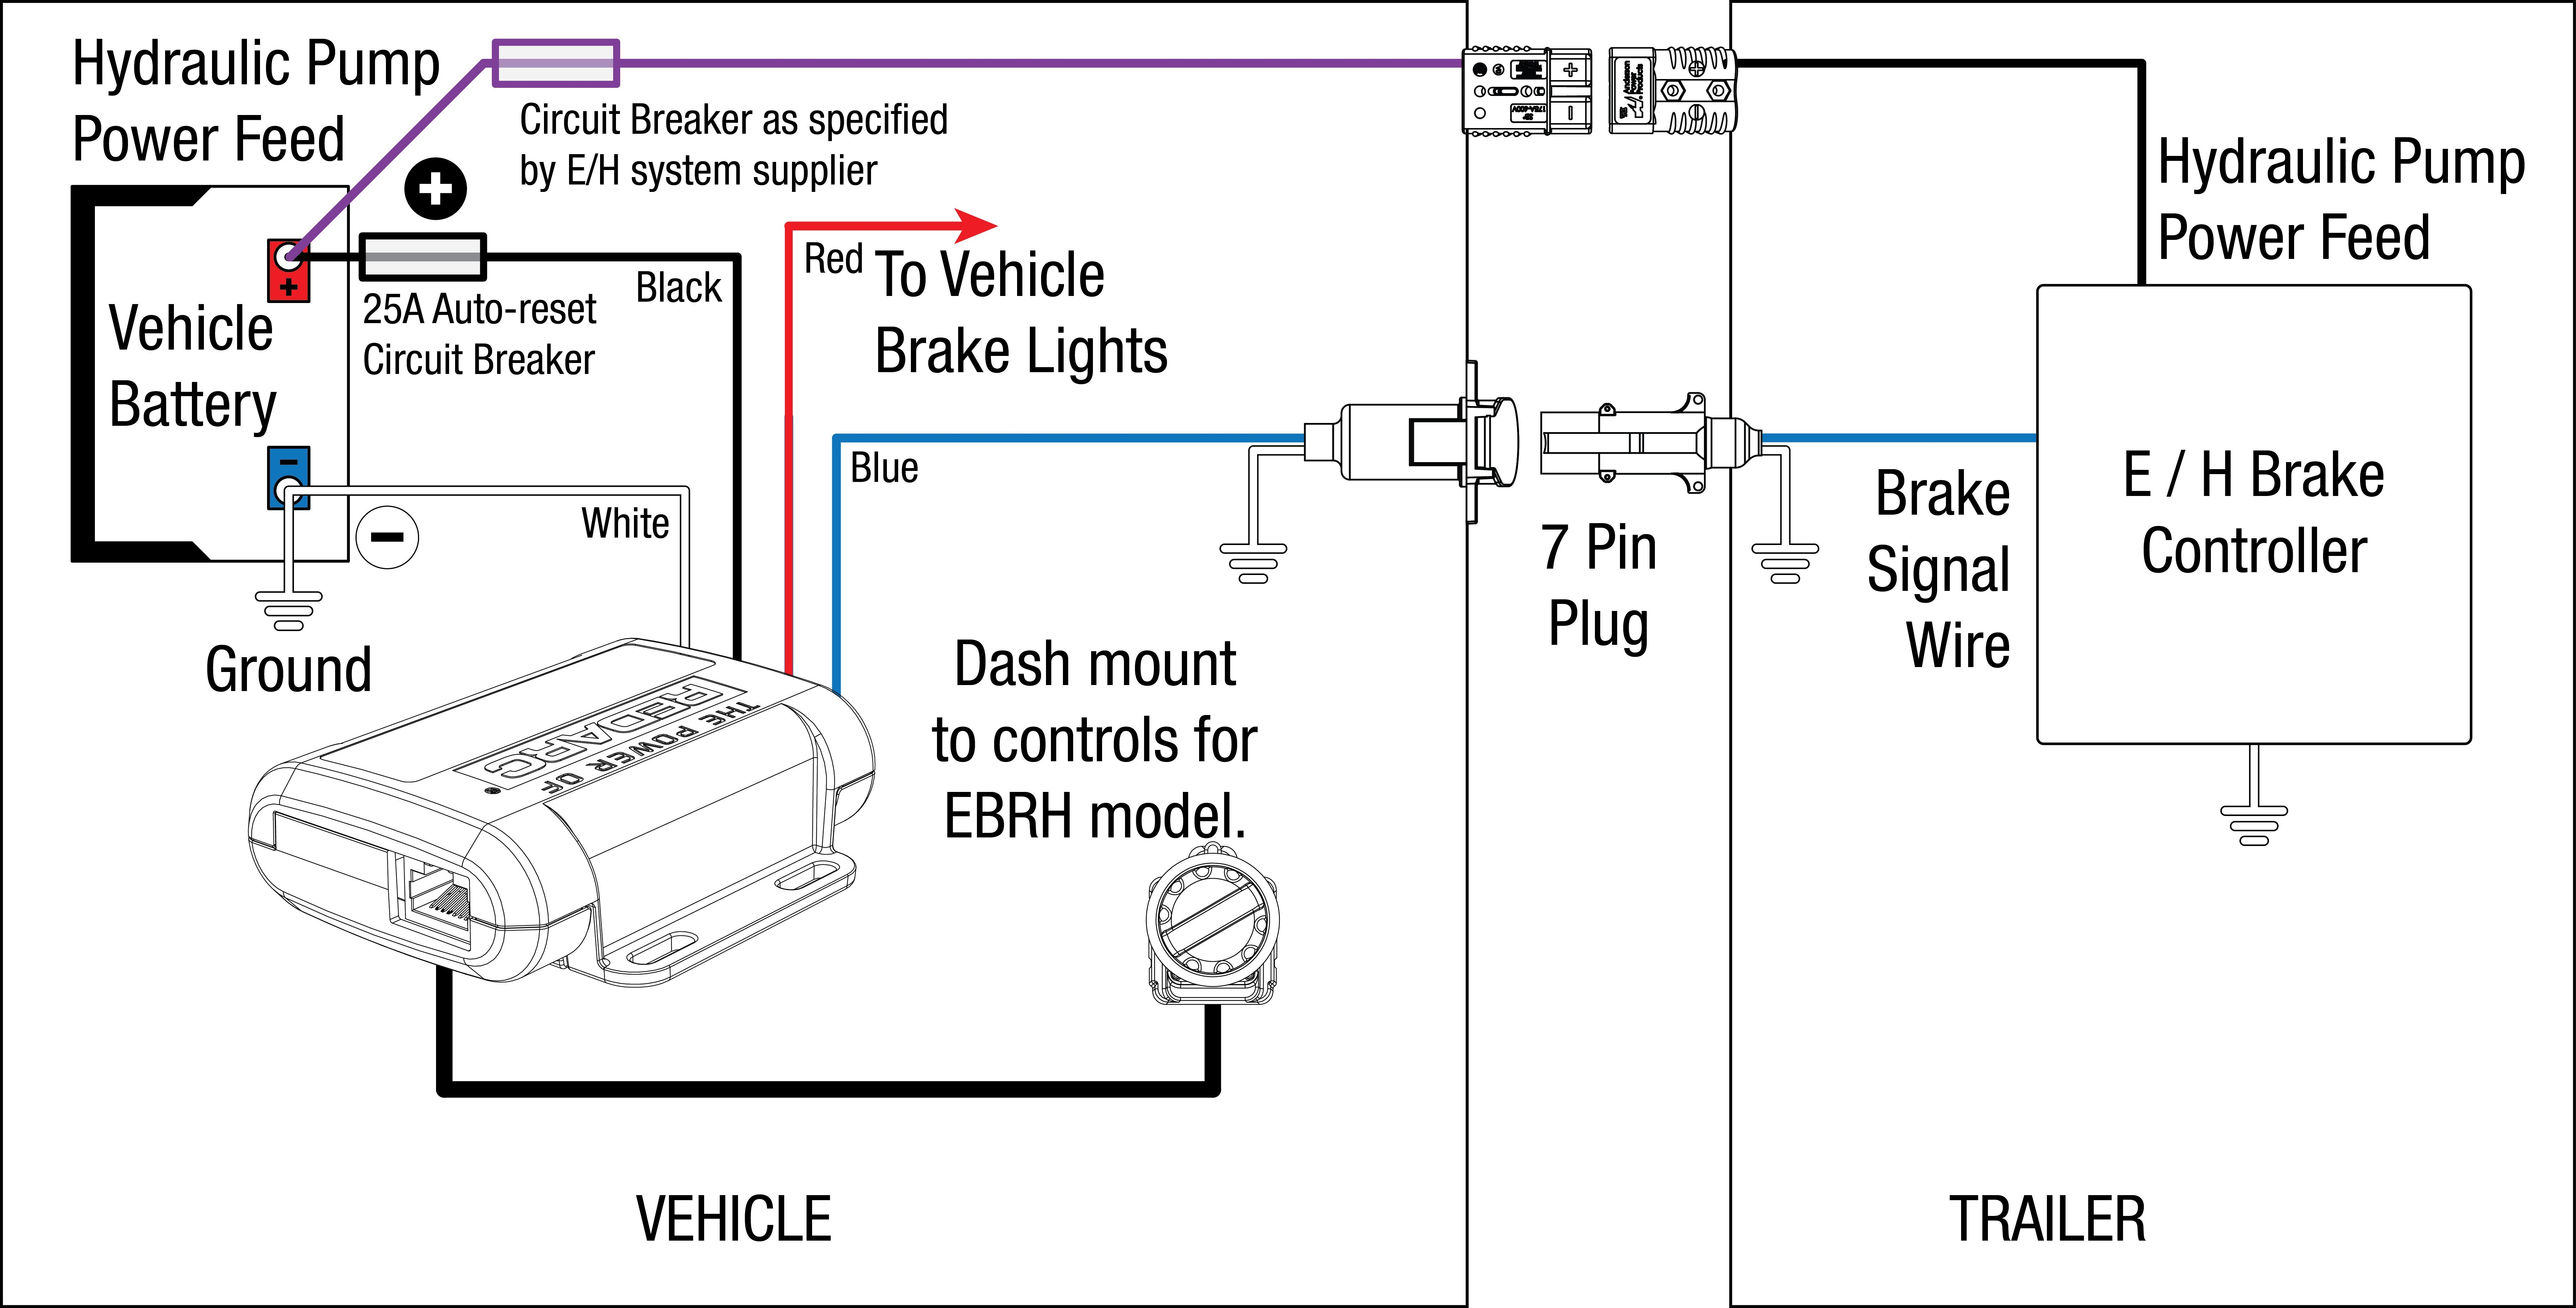 Electric brake controller wire diagram best of wiring diagram image 4 wire trailer wiring diagram unique electric trailer brake controller wiring diagram and inst 03 cheapraybanclubmaster Image collections